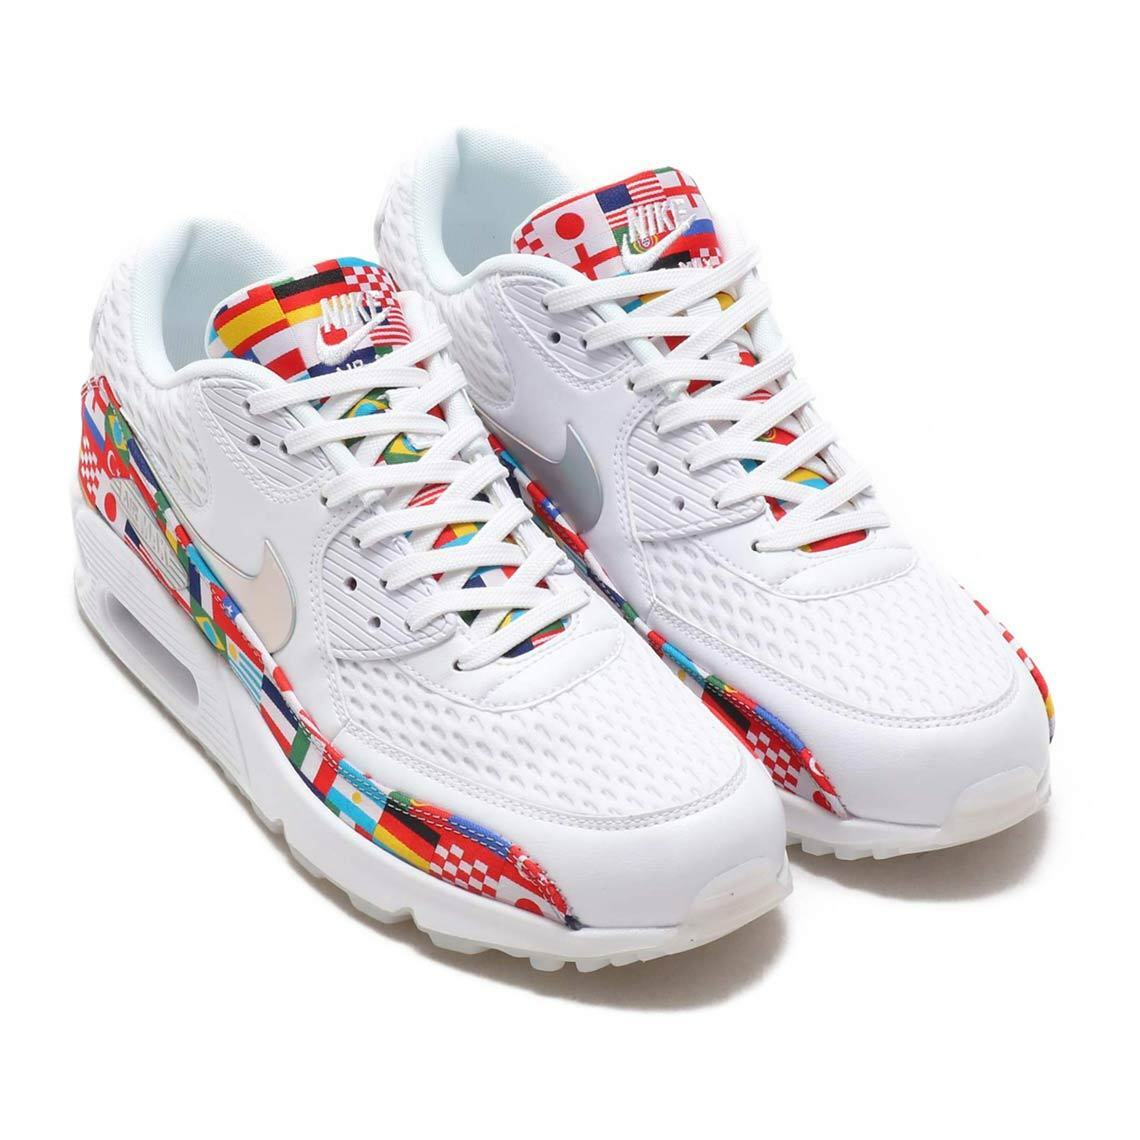 Nike Air Max 90 NIC Pack QS AO5119 100 World Cup International Ship Now